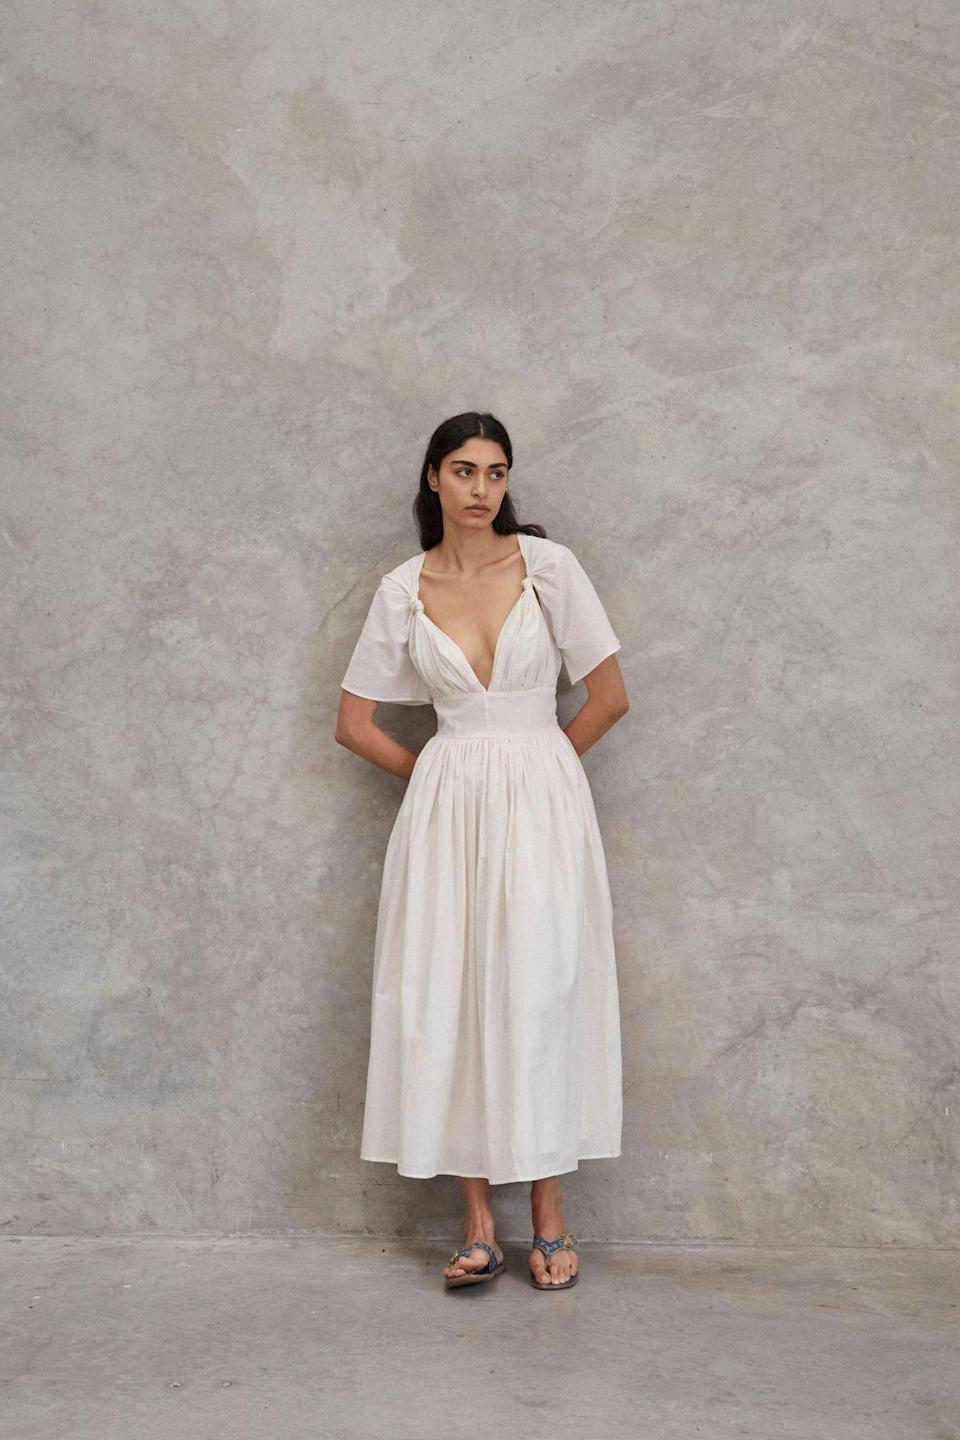 """<p><strong>Maggie Marilyn </strong></p><p>maggiemarilyn.com</p><p><strong>$795.00</strong></p><p><a href=""""https://maggiemarilyn.com/collections/dresses/products/the-marilyn-dress"""" rel=""""nofollow noopener"""" target=""""_blank"""" data-ylk=""""slk:Shop Now"""" class=""""link rapid-noclick-resp"""">Shop Now</a></p><p>Maggie Marilyn places ethics and environmental responsibility at the forefront of every garment. This dress screams summer.</p>"""